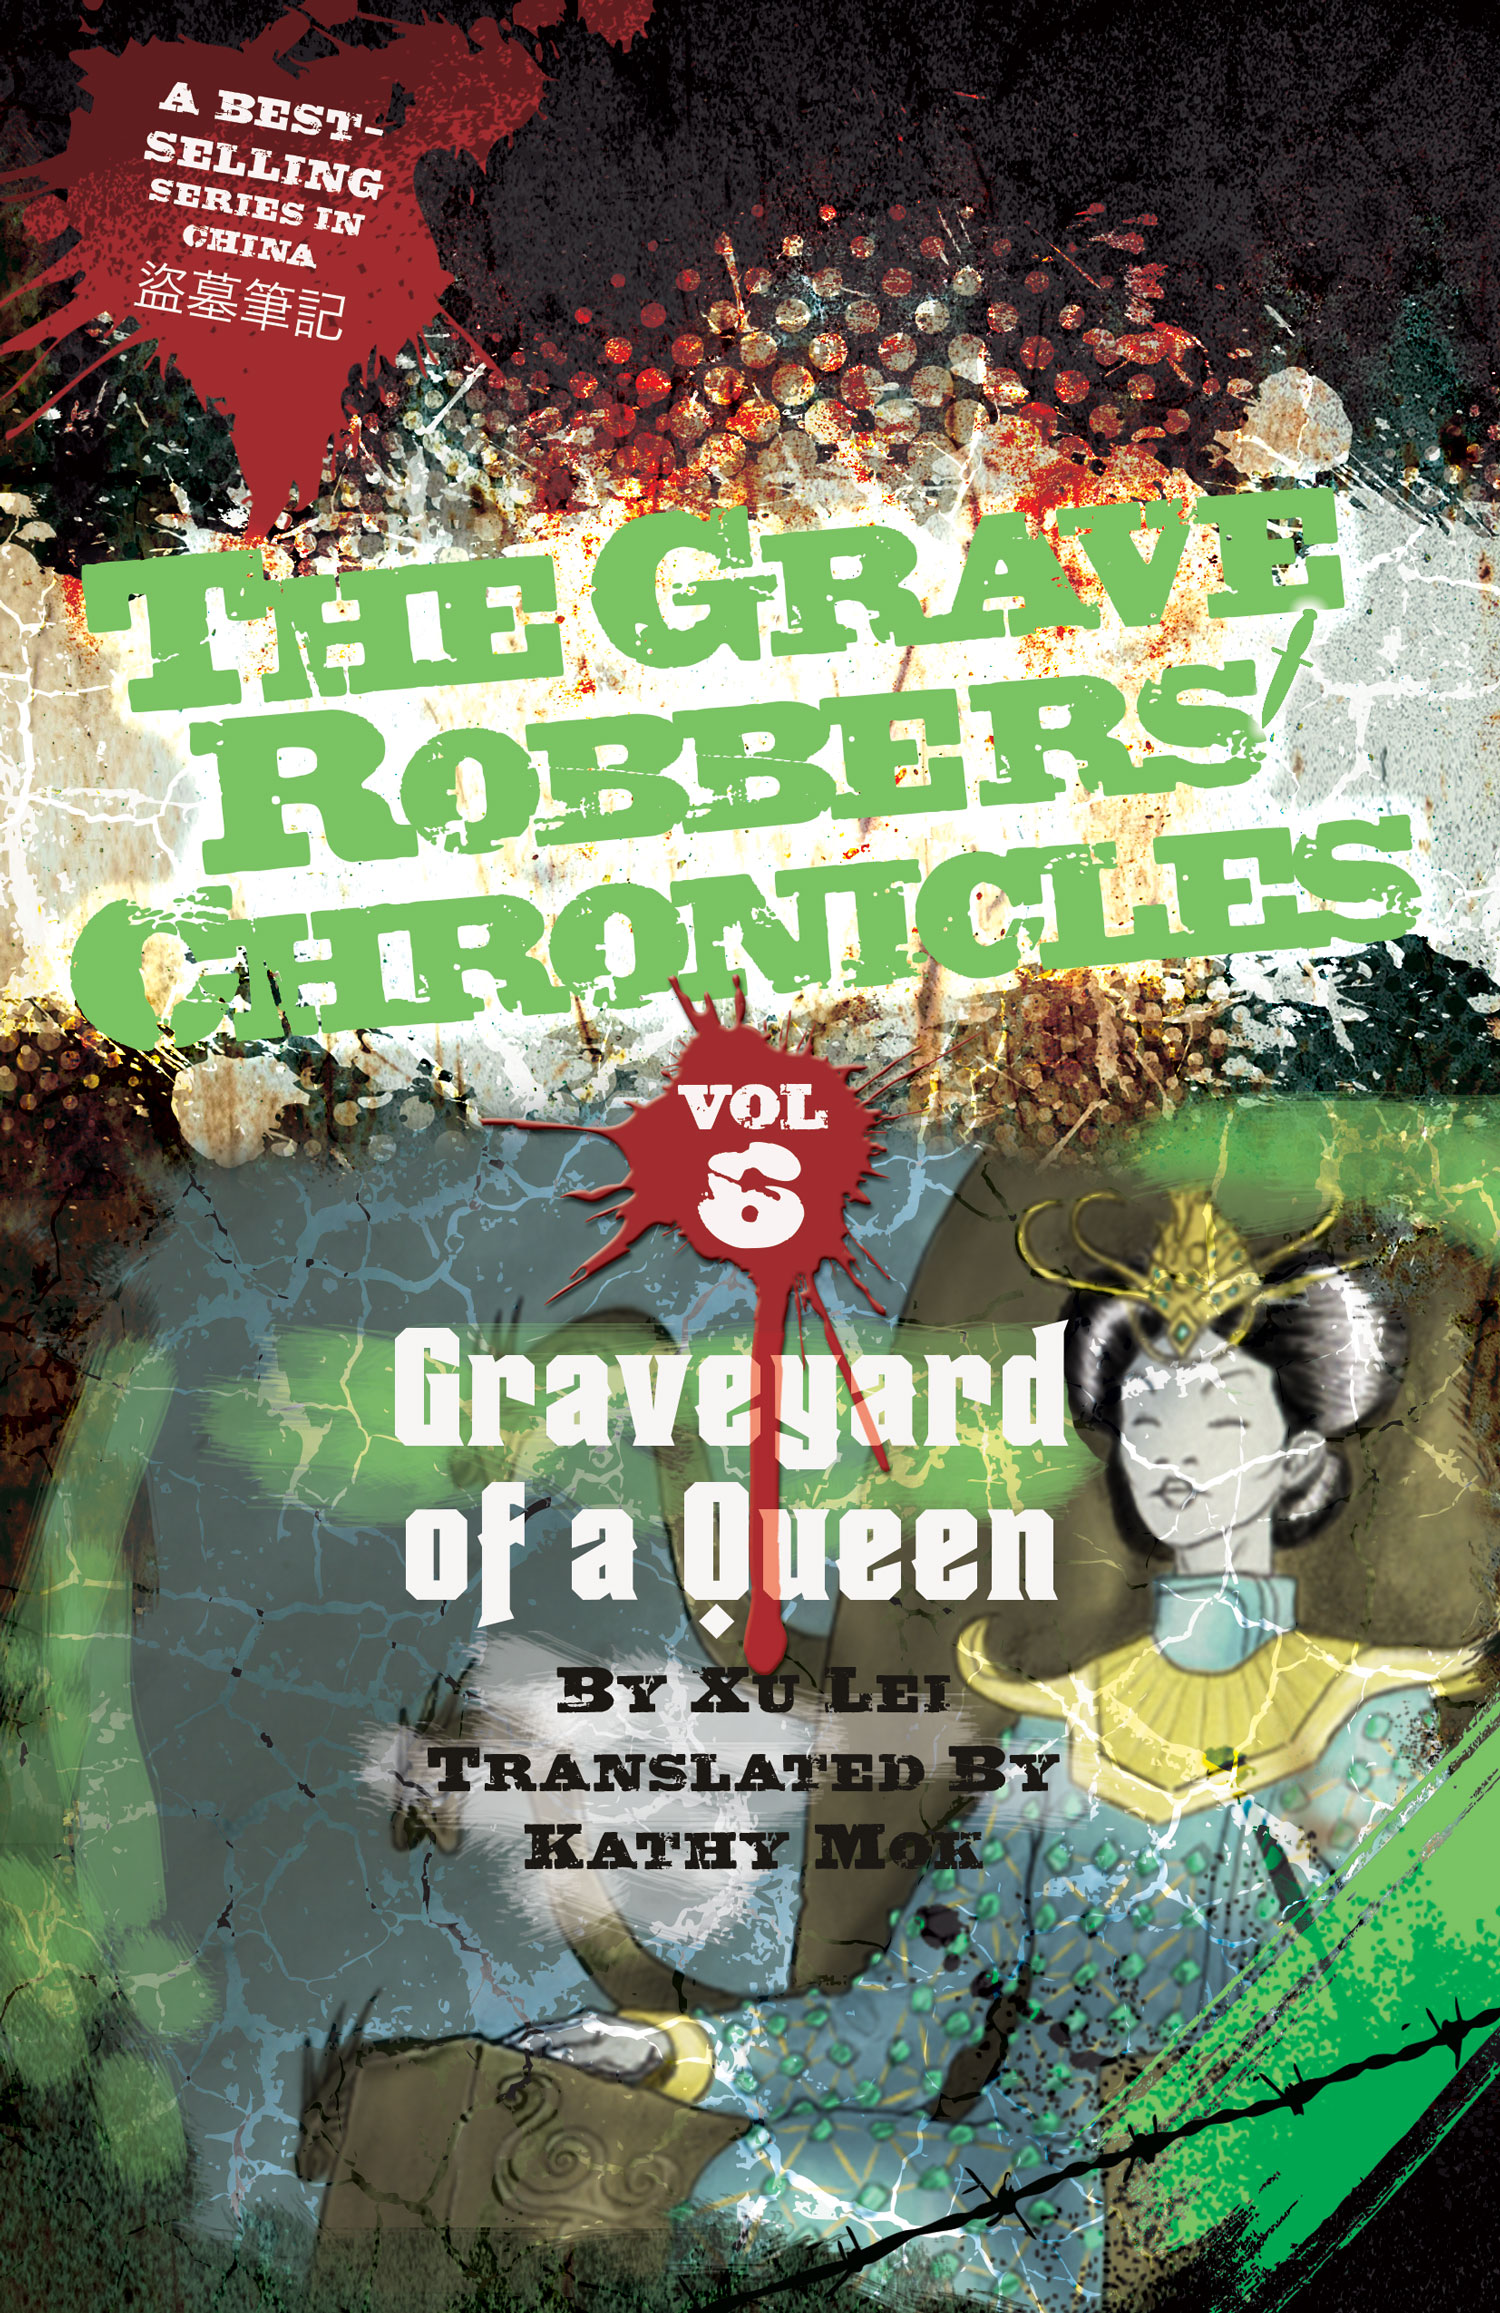 Vol. 6: Graveyard of a Queen